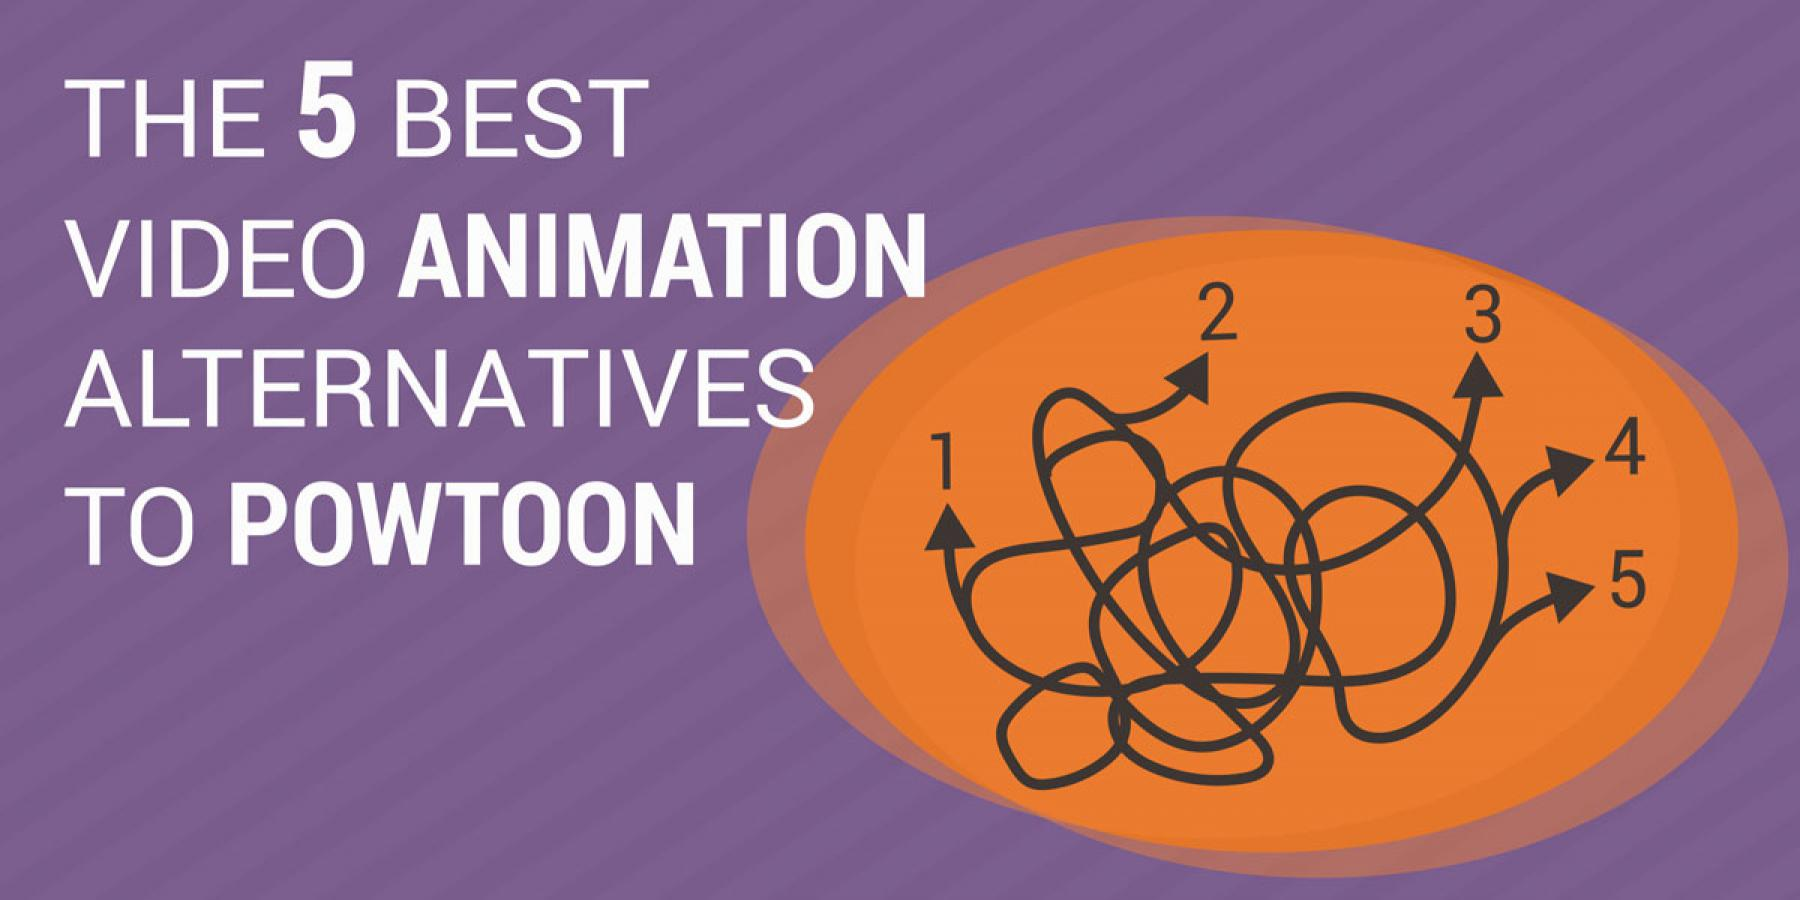 The 5 best video animation alternatives to Powtoon